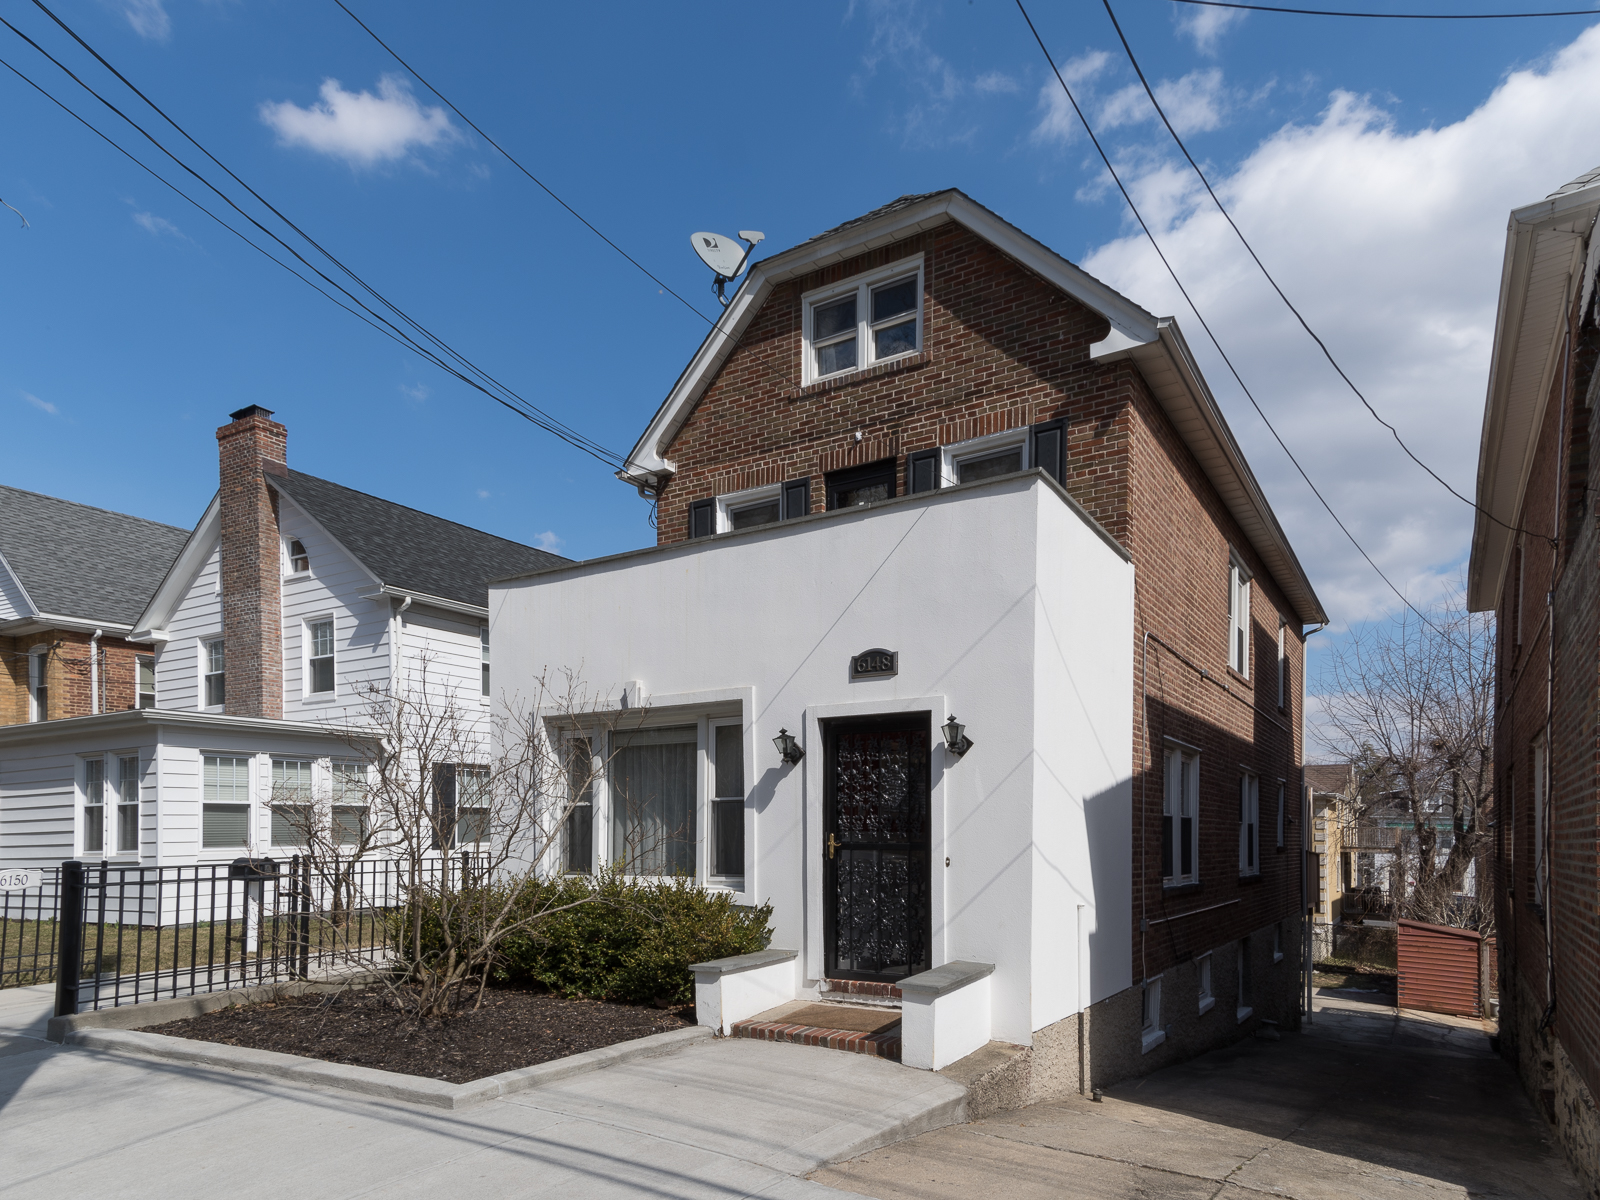 Maison unifamiliale pour l Vente à North Riverdale Detached Brick House 6148 Delafield Avenue Riverdale, New York 10471 États-Unis